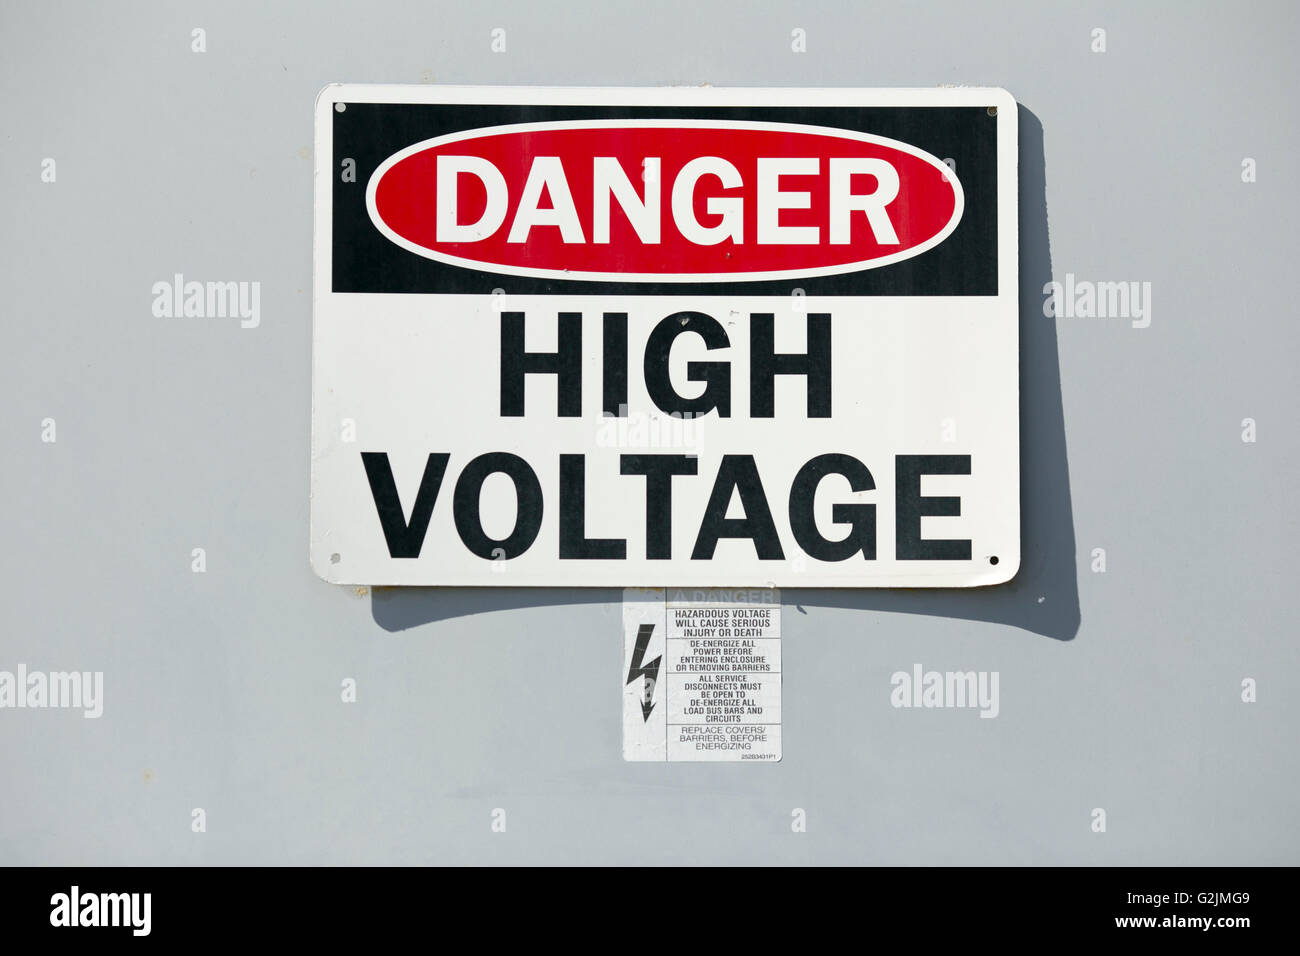 Signage directing Danger, High Voltage Stock Photo: 104902793 - Alamy